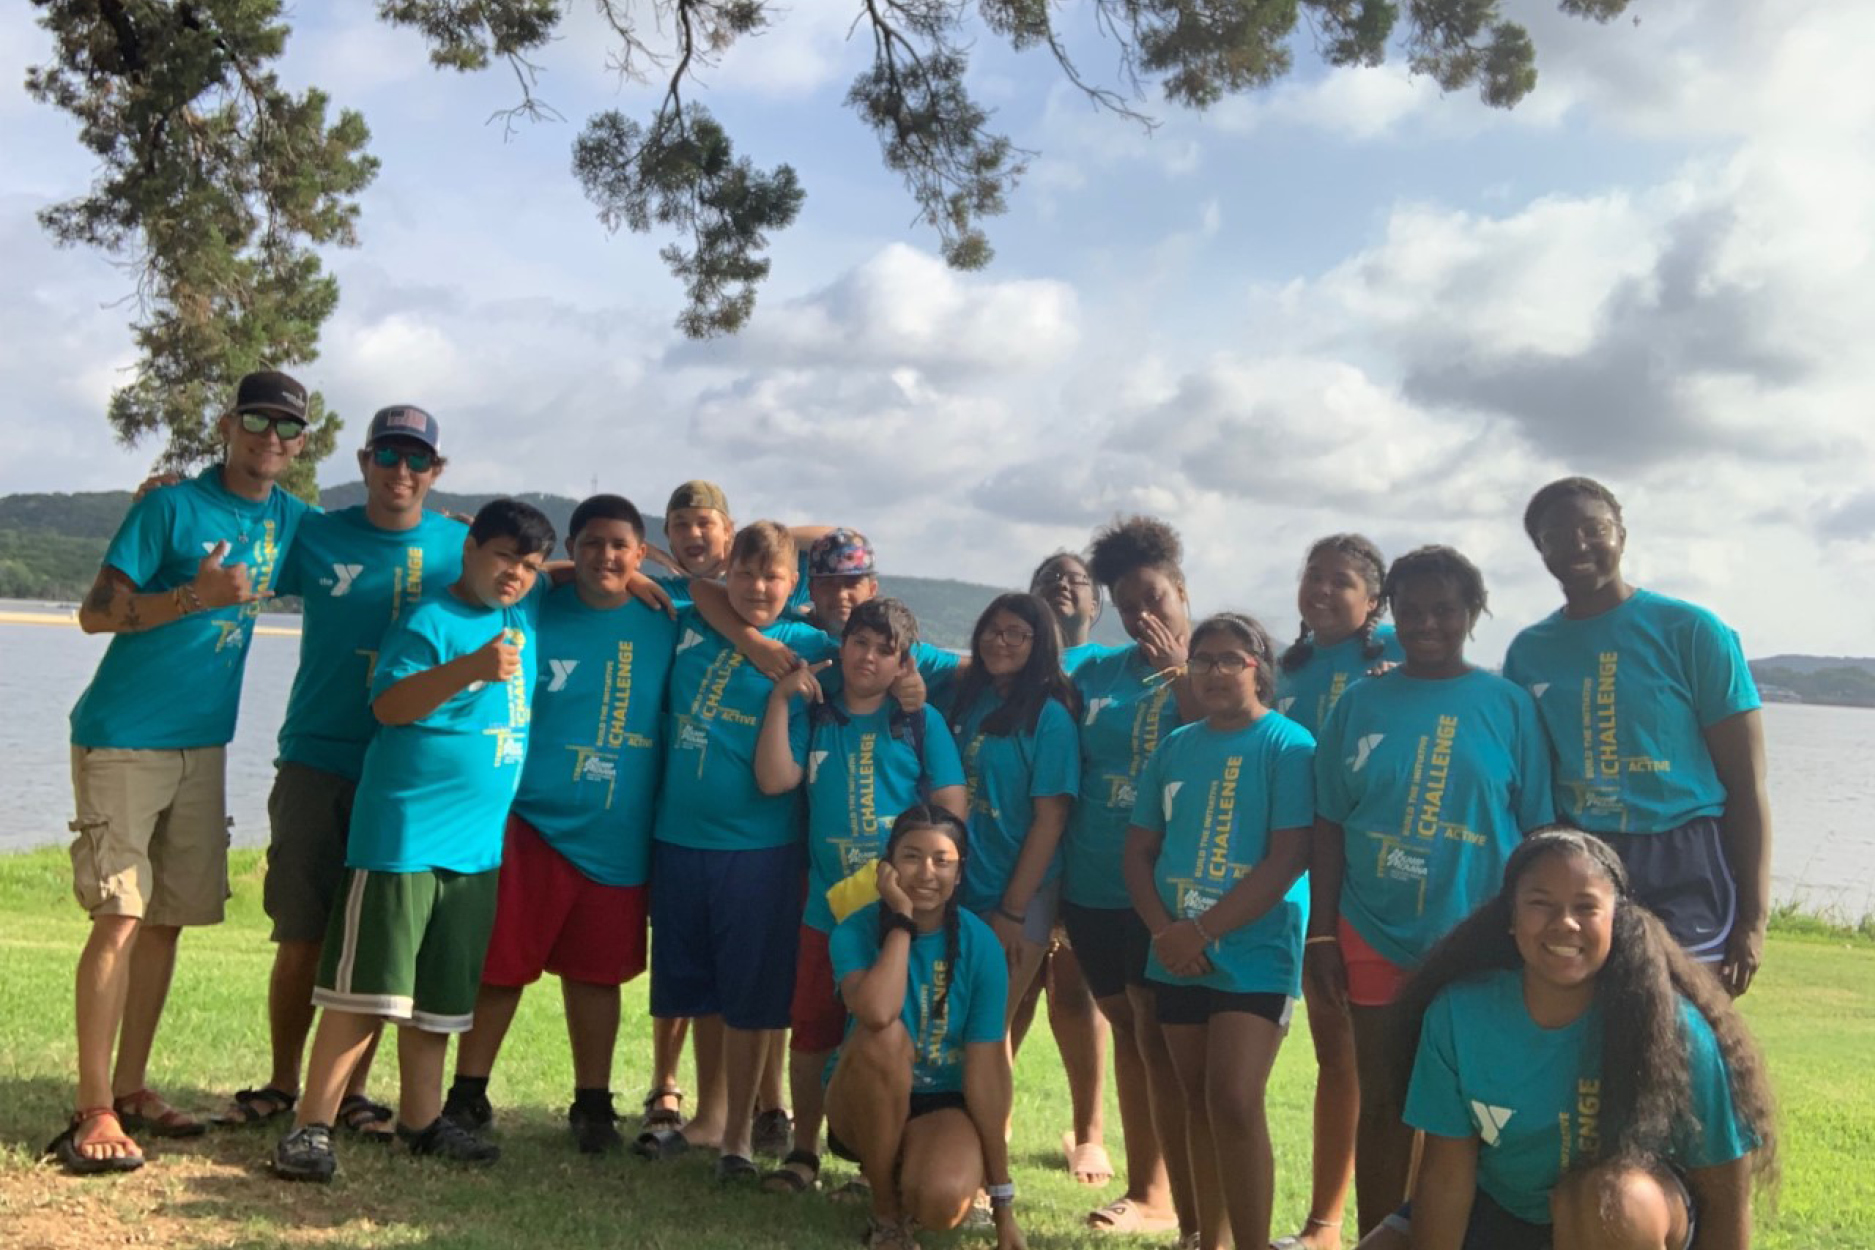 Kamp K'aana campers smiling for a photo in front of Possum Kingdom lake